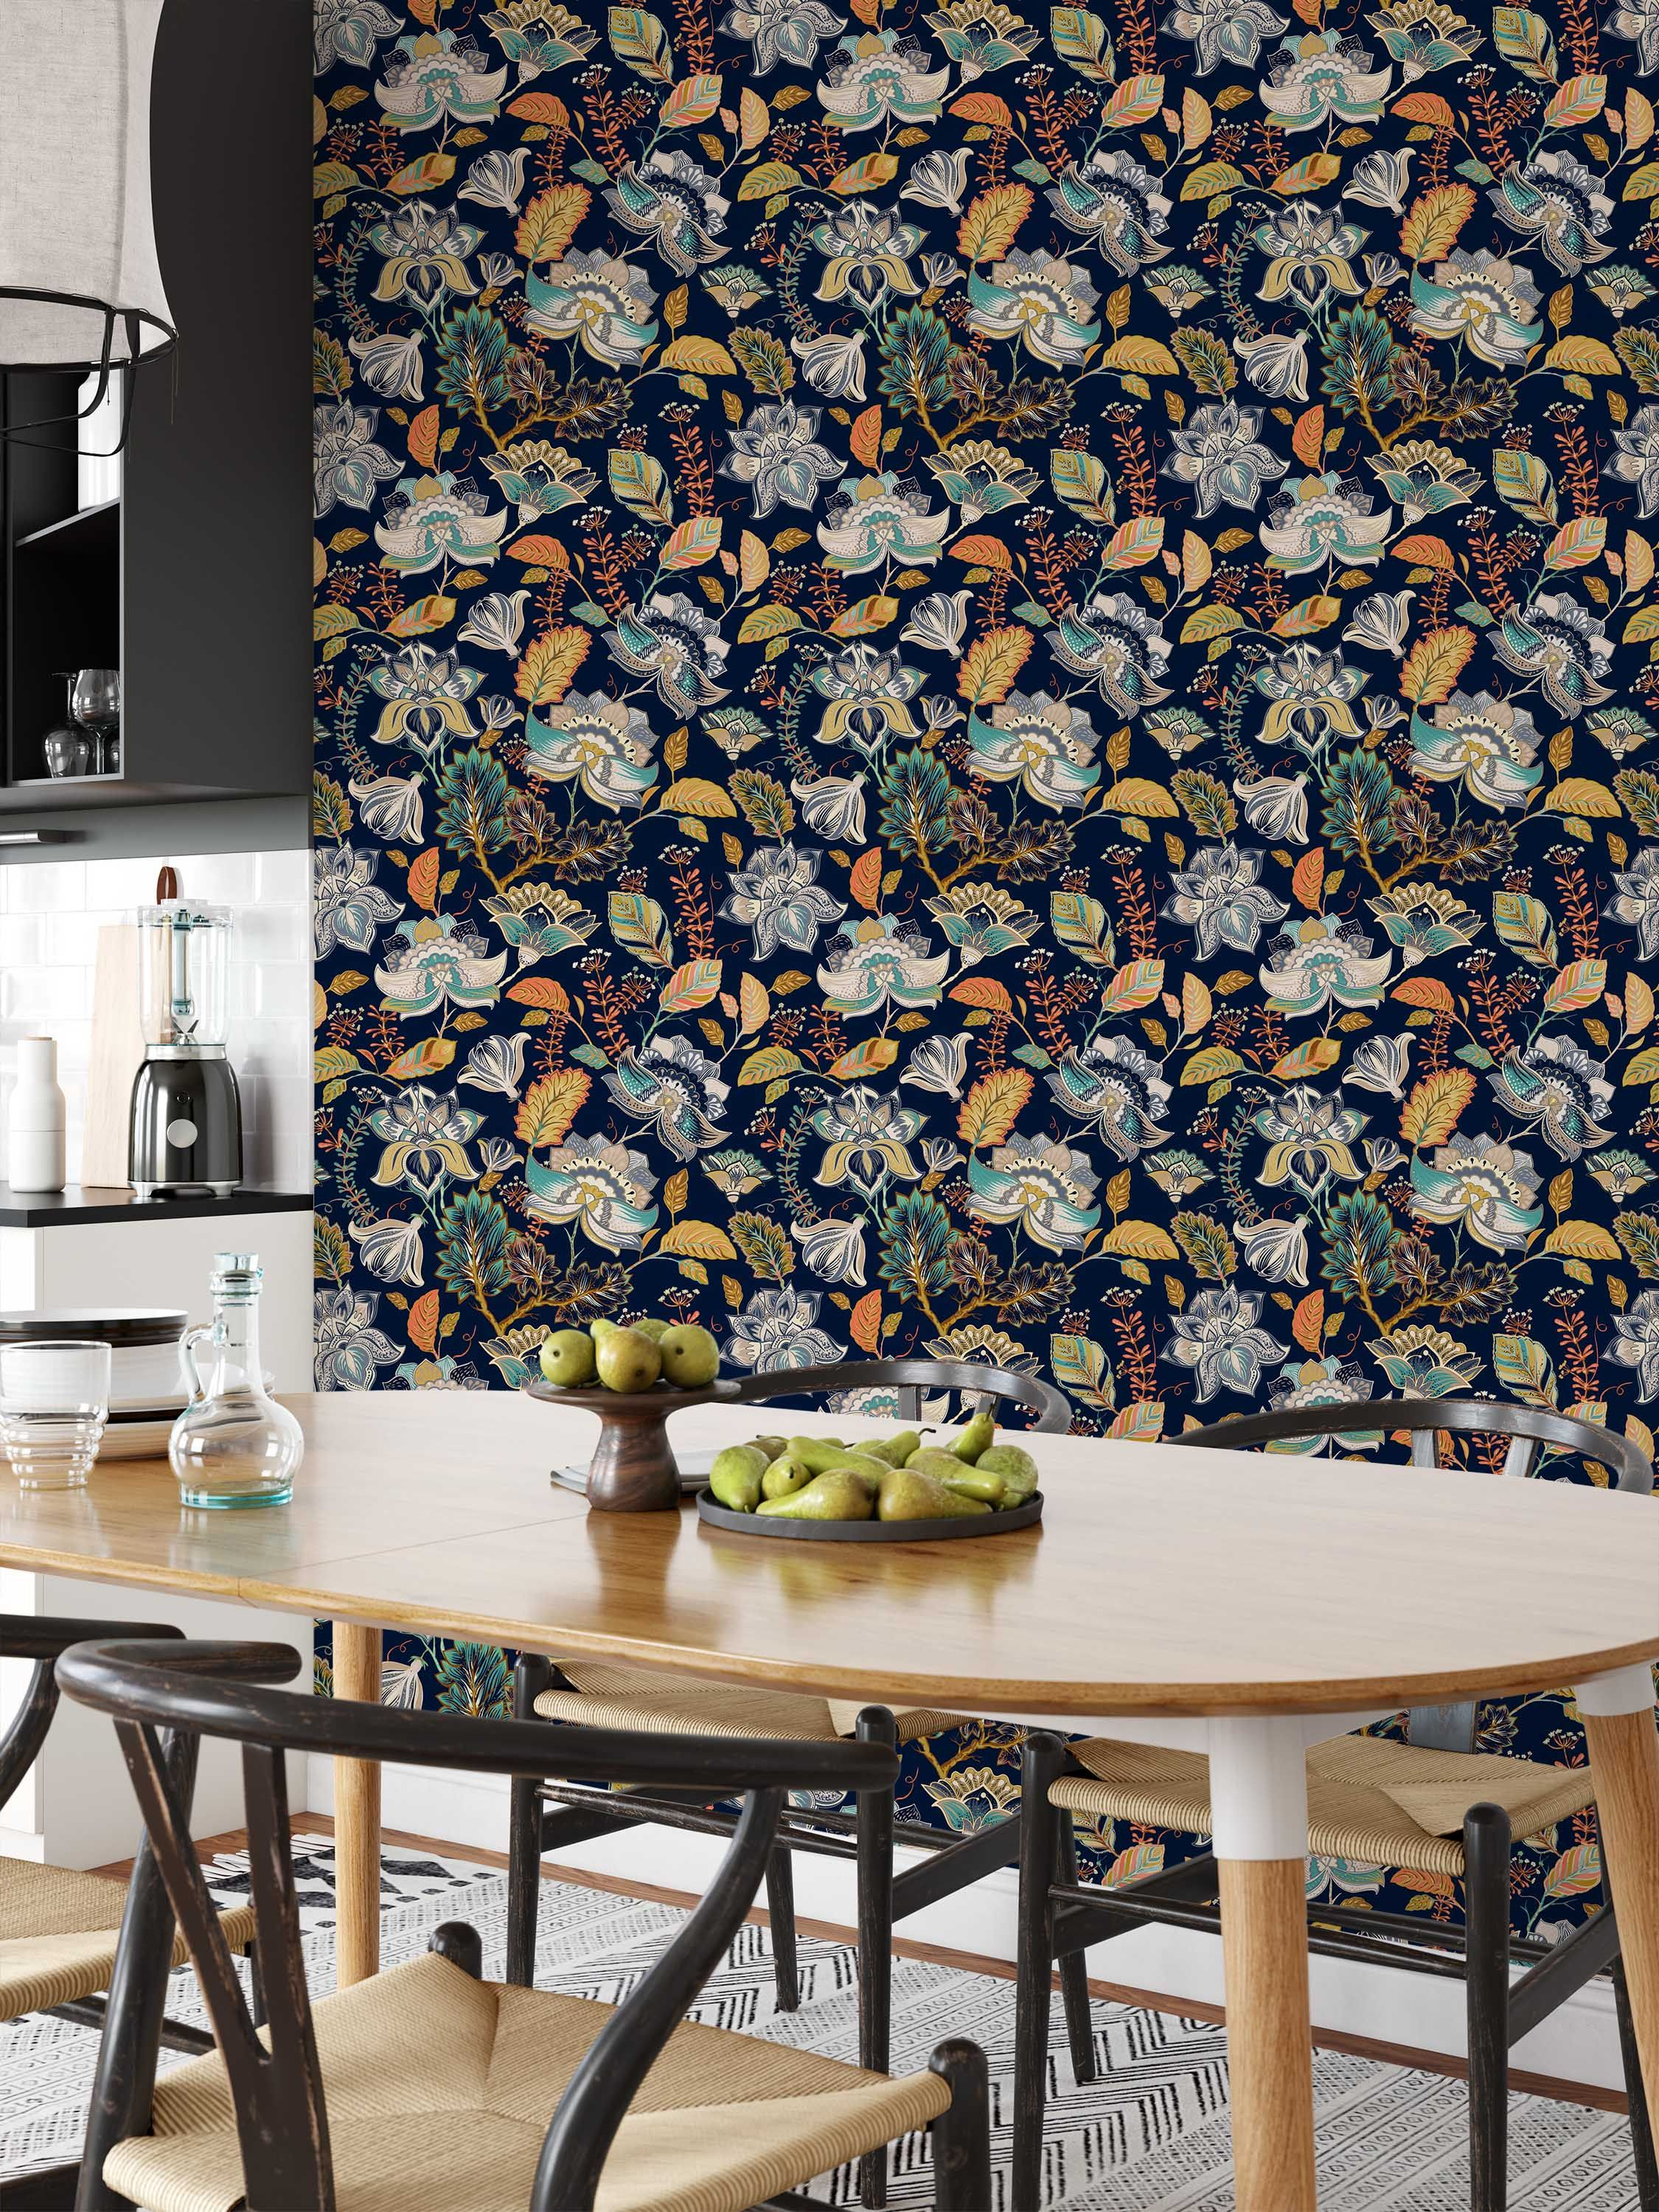 Removable Wallpaper Peel And Stick Wallpaper Home Decor Wall Decor Wall Mural Wall Paper Floral Wallpaper In 2020 Floral Wallpaper Removable Wallpaper Home Wallpaper